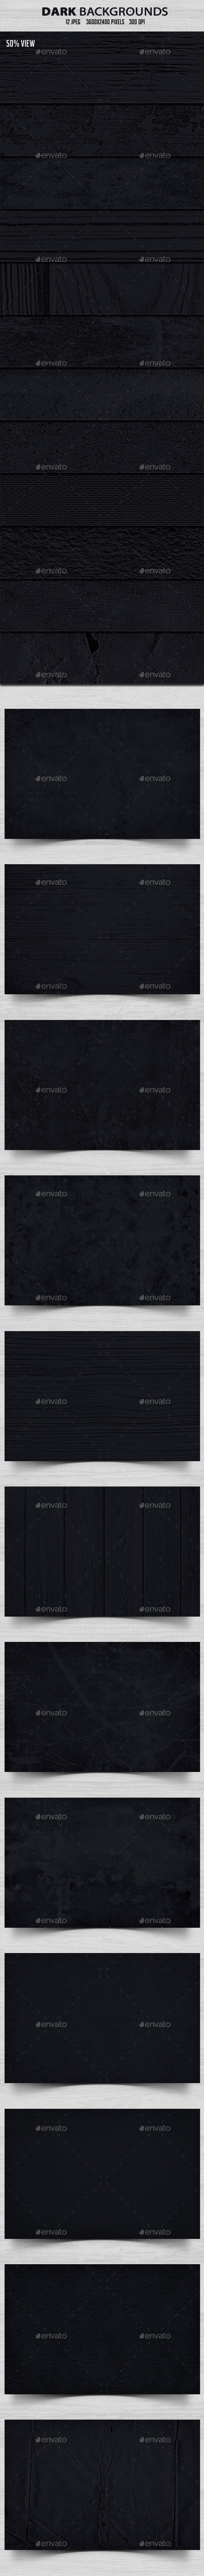 GraphicRiver Dark Backgrounds 10371779